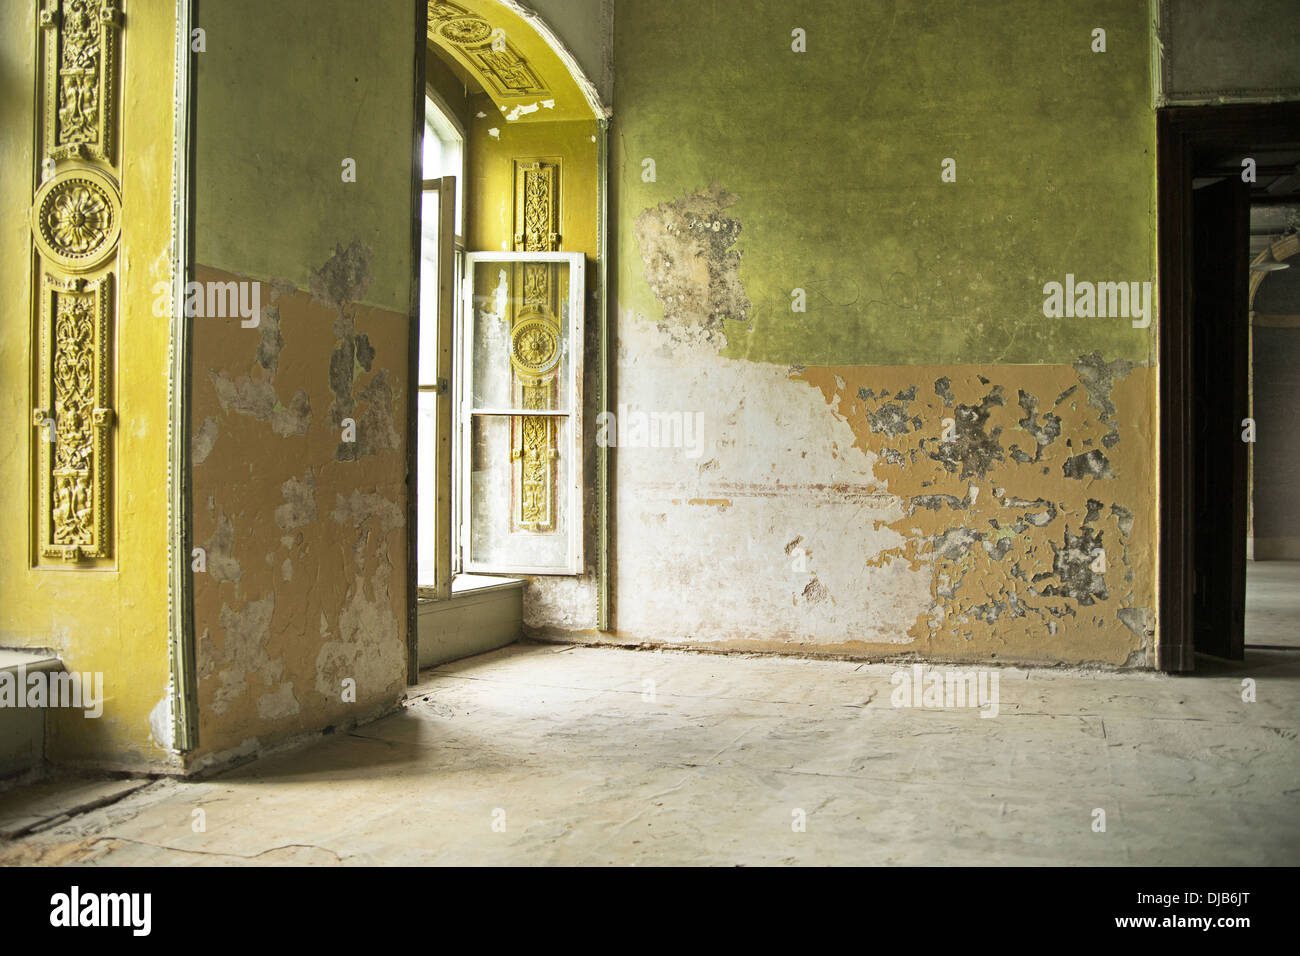 Waisted old interior in the ancient building - Stock Image